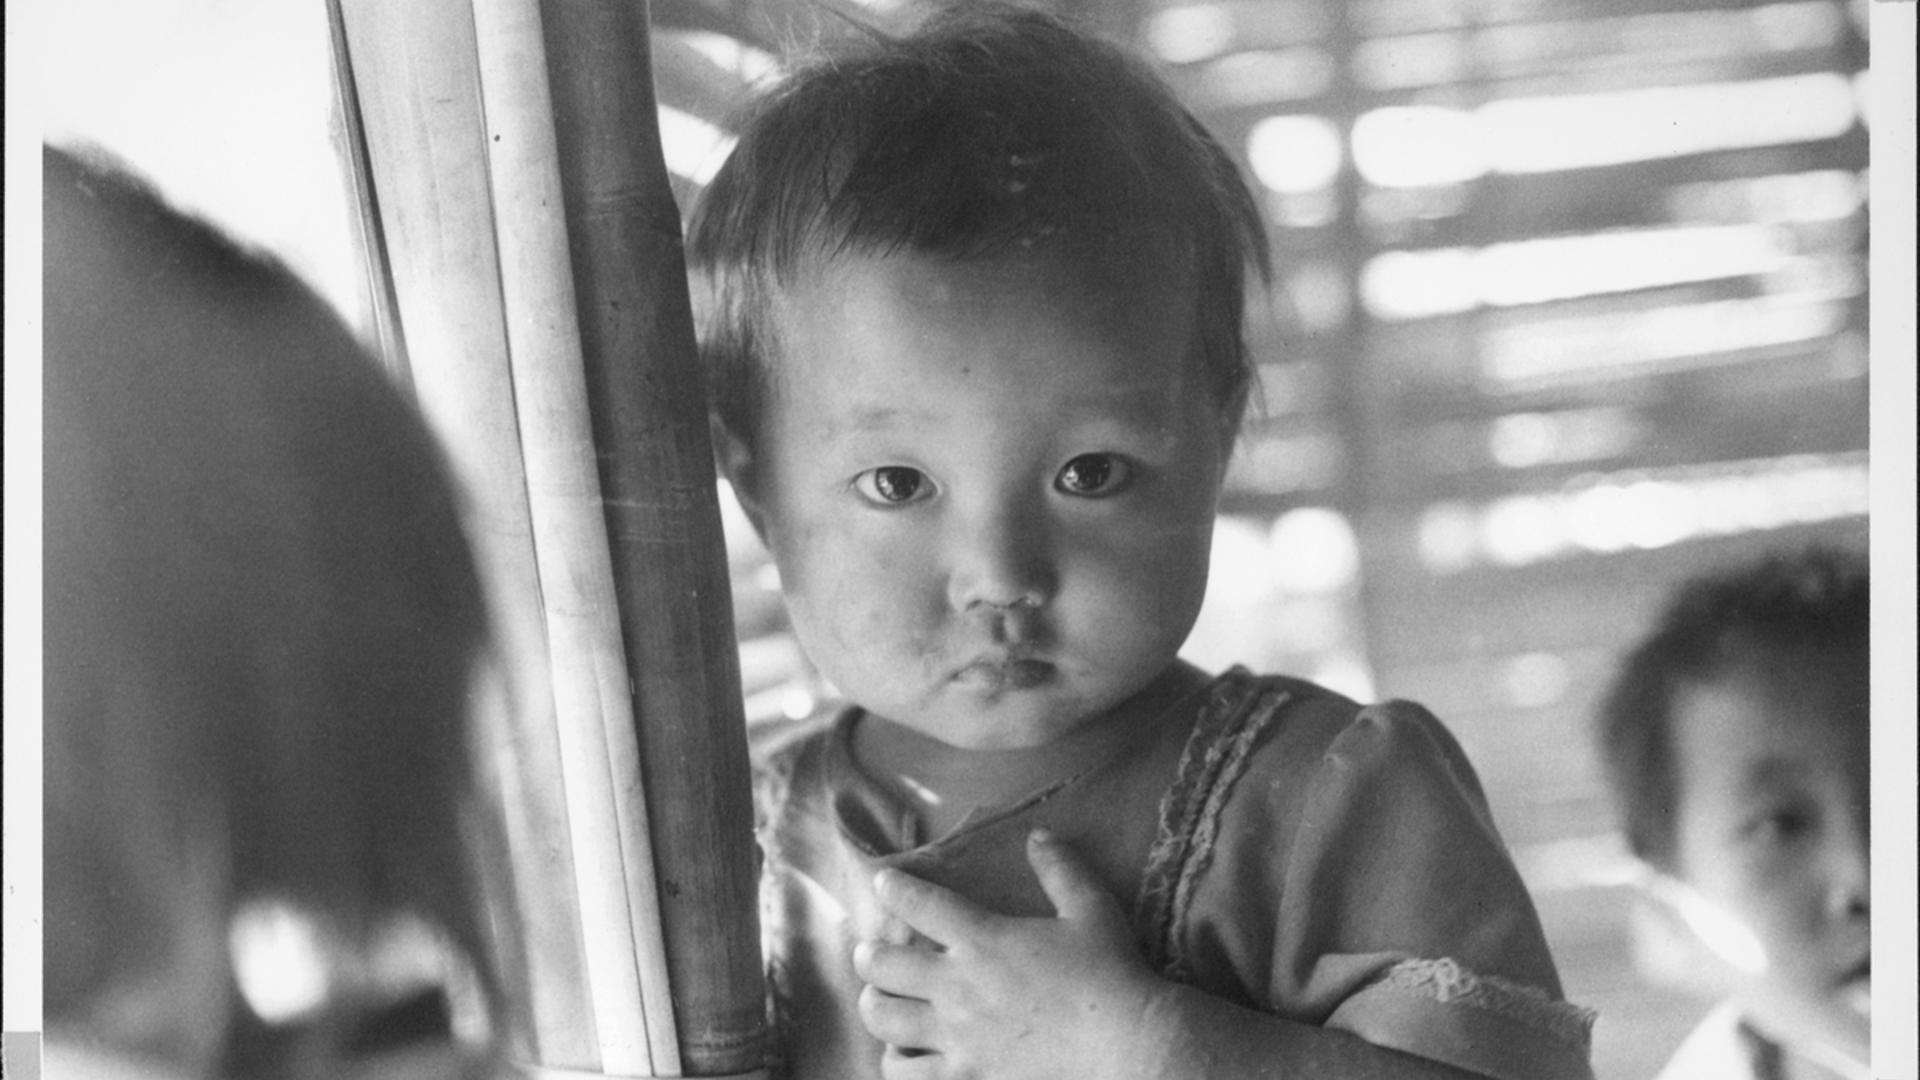 A young girl from Southeast Asia looks at the camera with a serious expression.